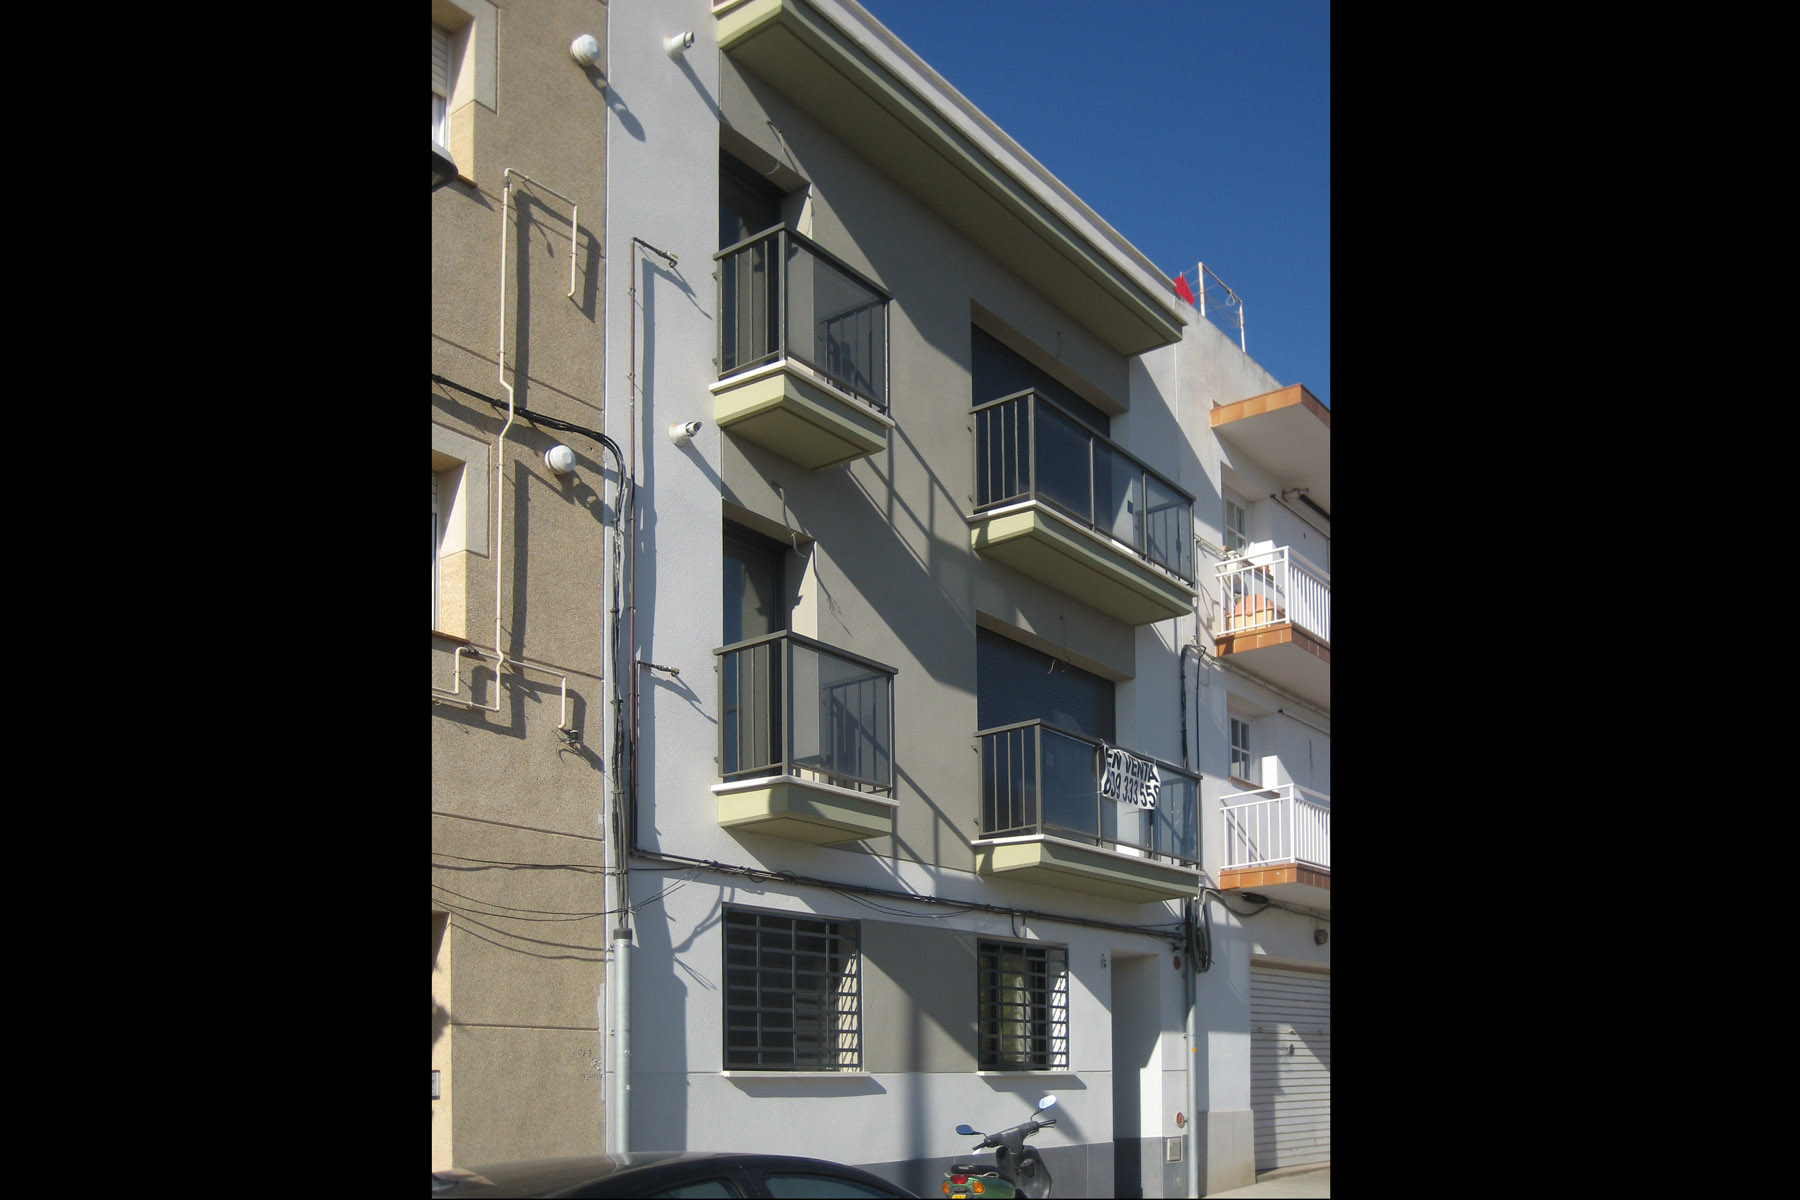 Subur-Multifamily-Building-Sant-Pere-Ribes-Barcelona-01